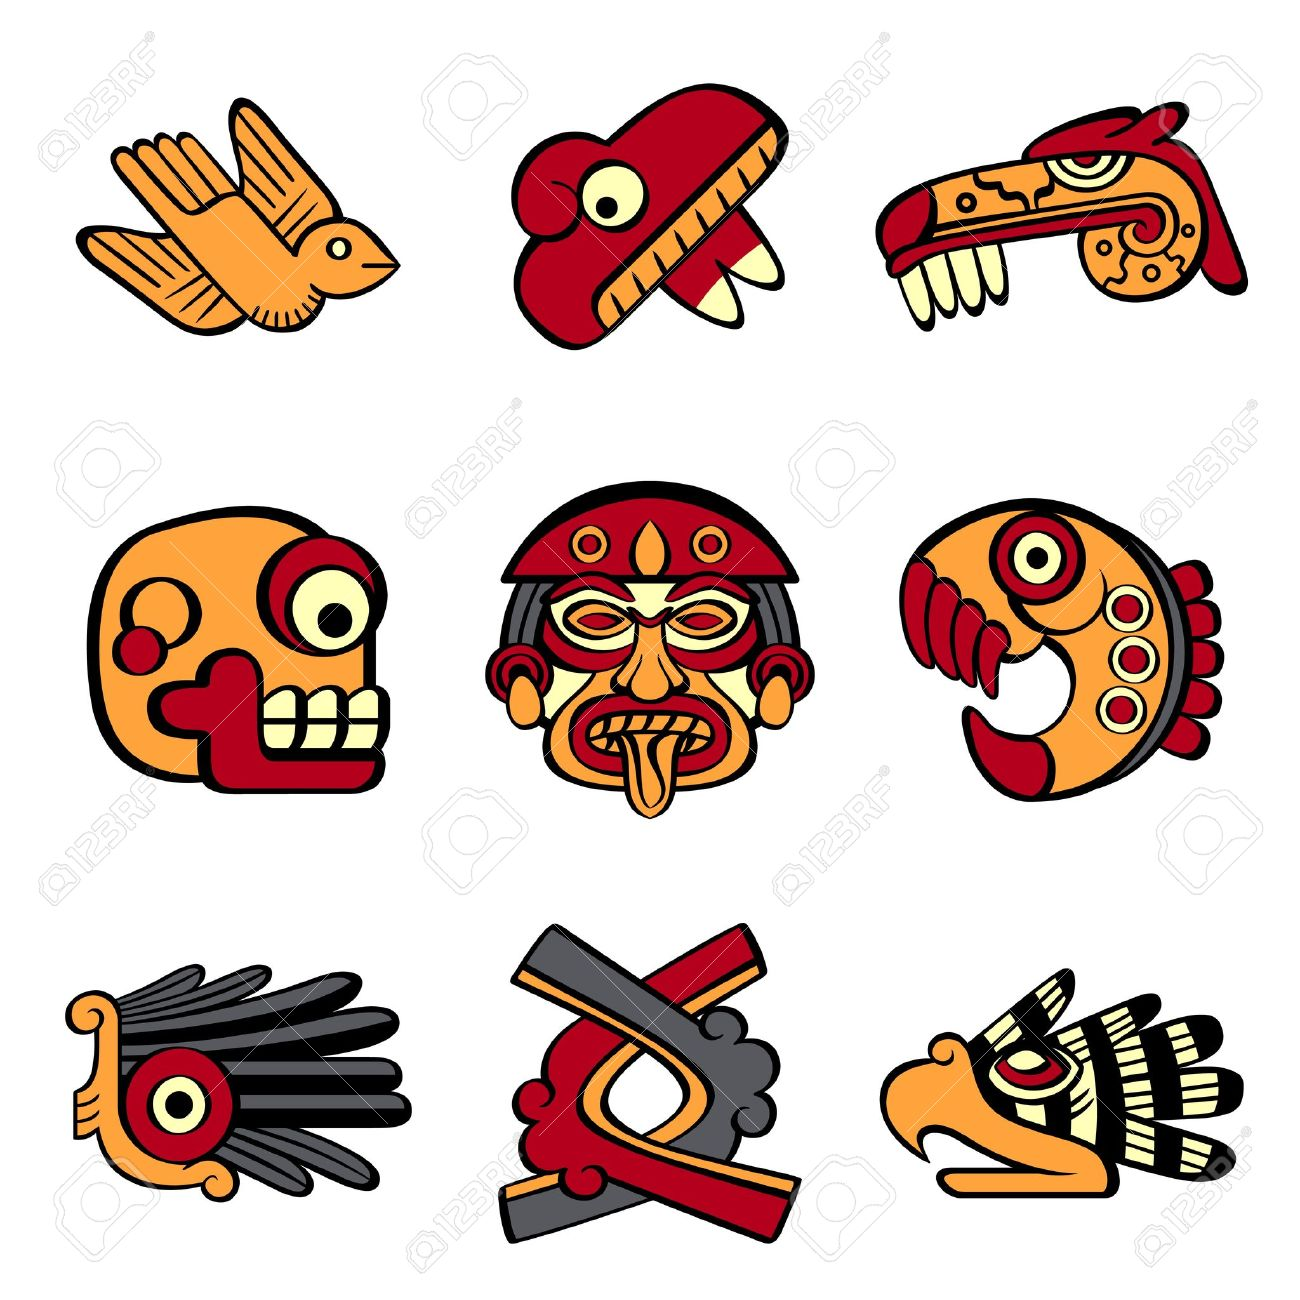 Aztec animal and abstract symbols royalty free cliparts vectors aztec animal and abstract symbols stock vector 14927775 biocorpaavc Images